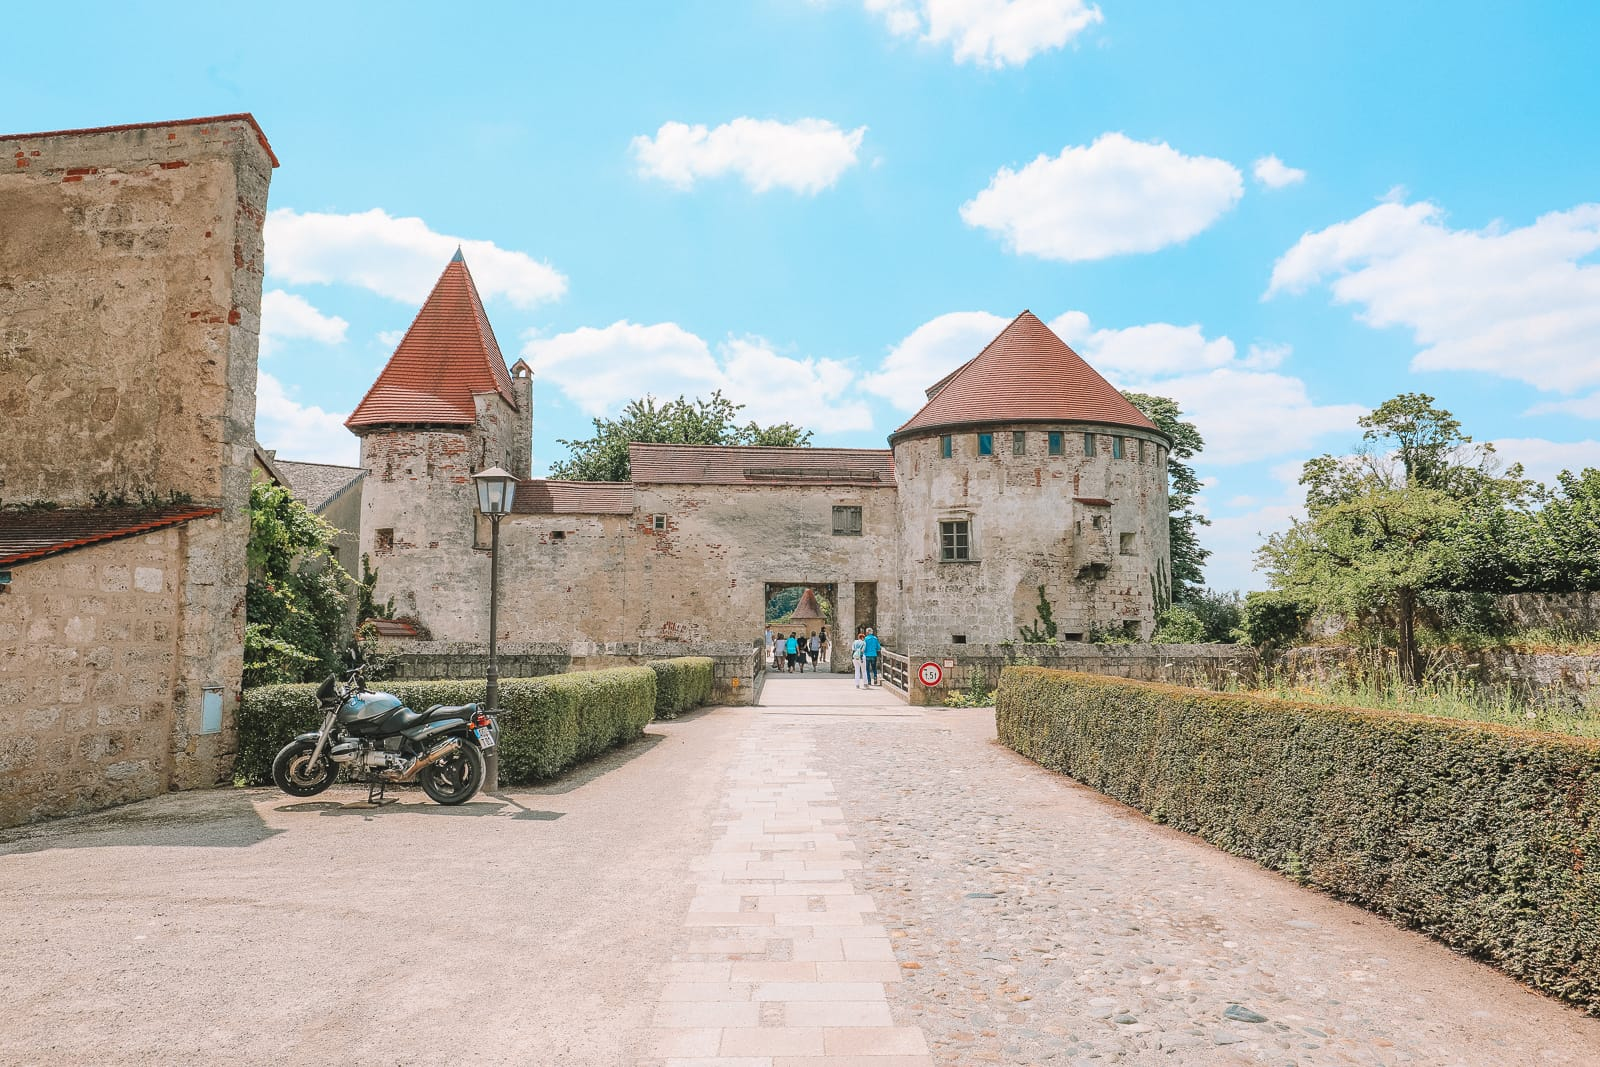 Burghausen Castle - The Longest Castle In The Entire World! (68)